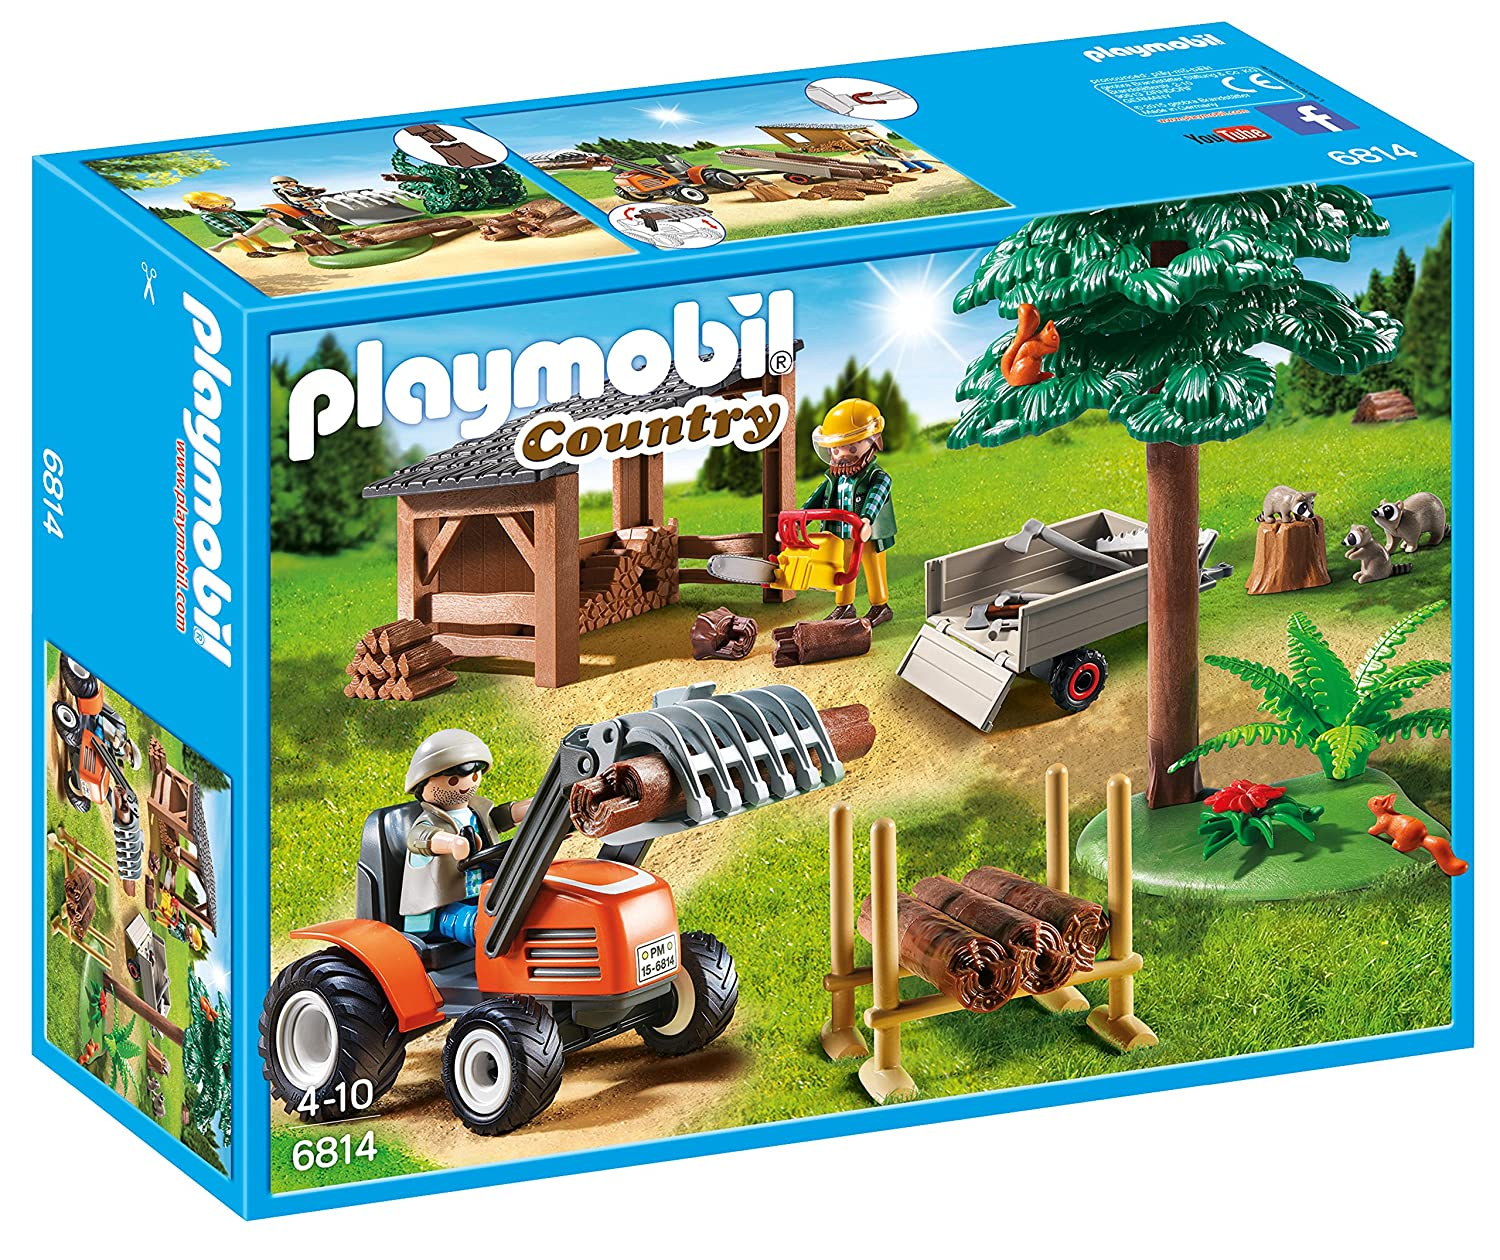 Playmobil Vida en el Bosque- Lumber Yard with Tractor Playmobil Playset, (6814)